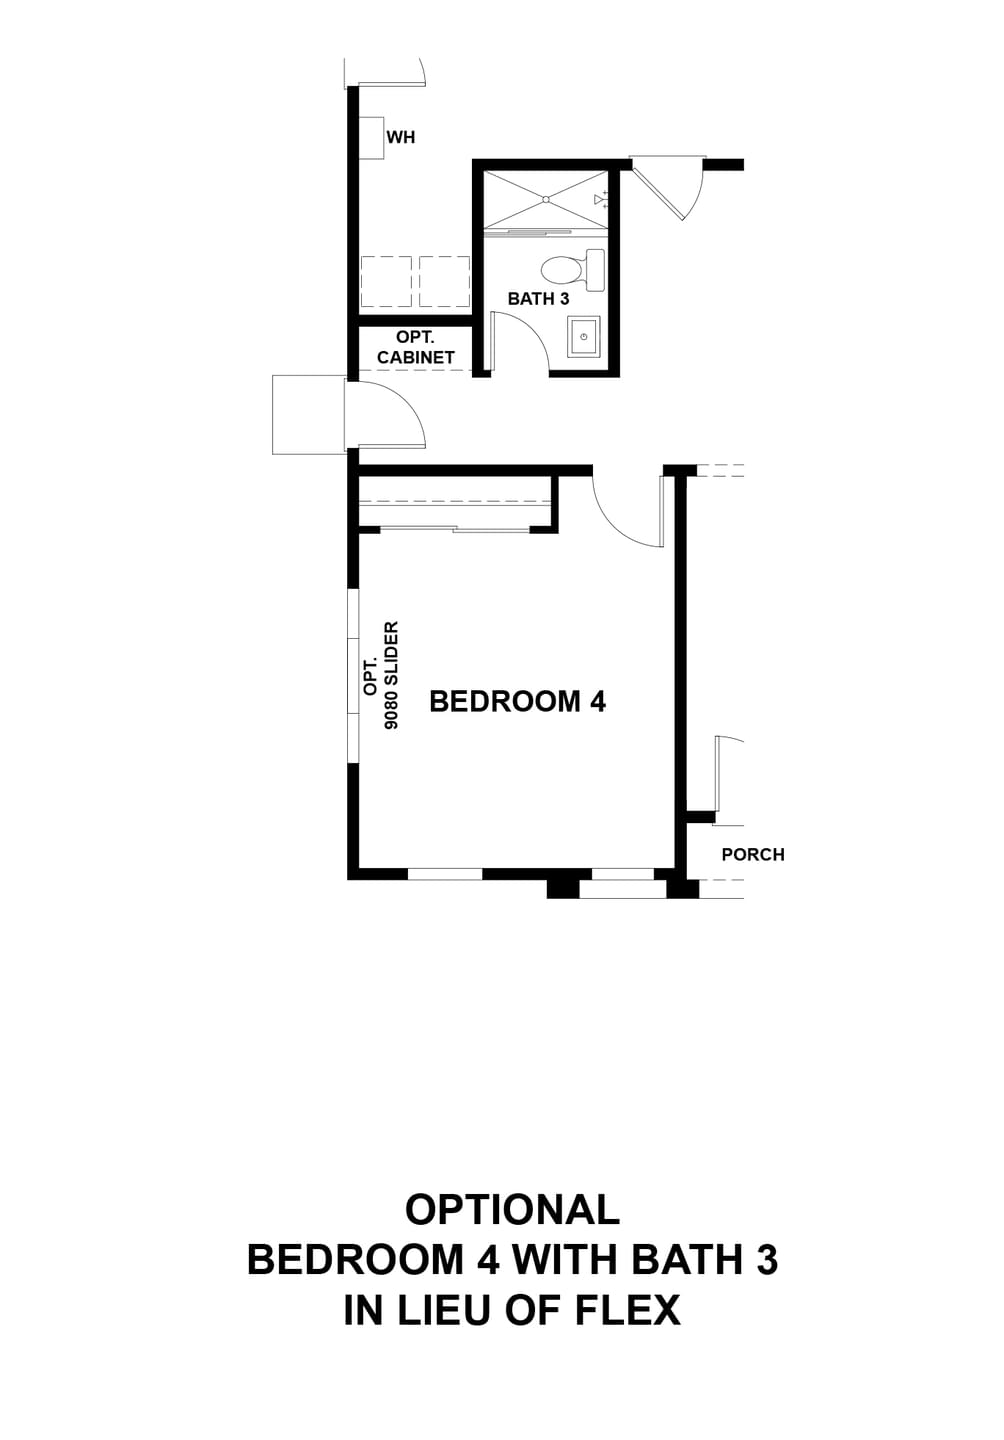 Options. 3br New Home in San Jose, CA